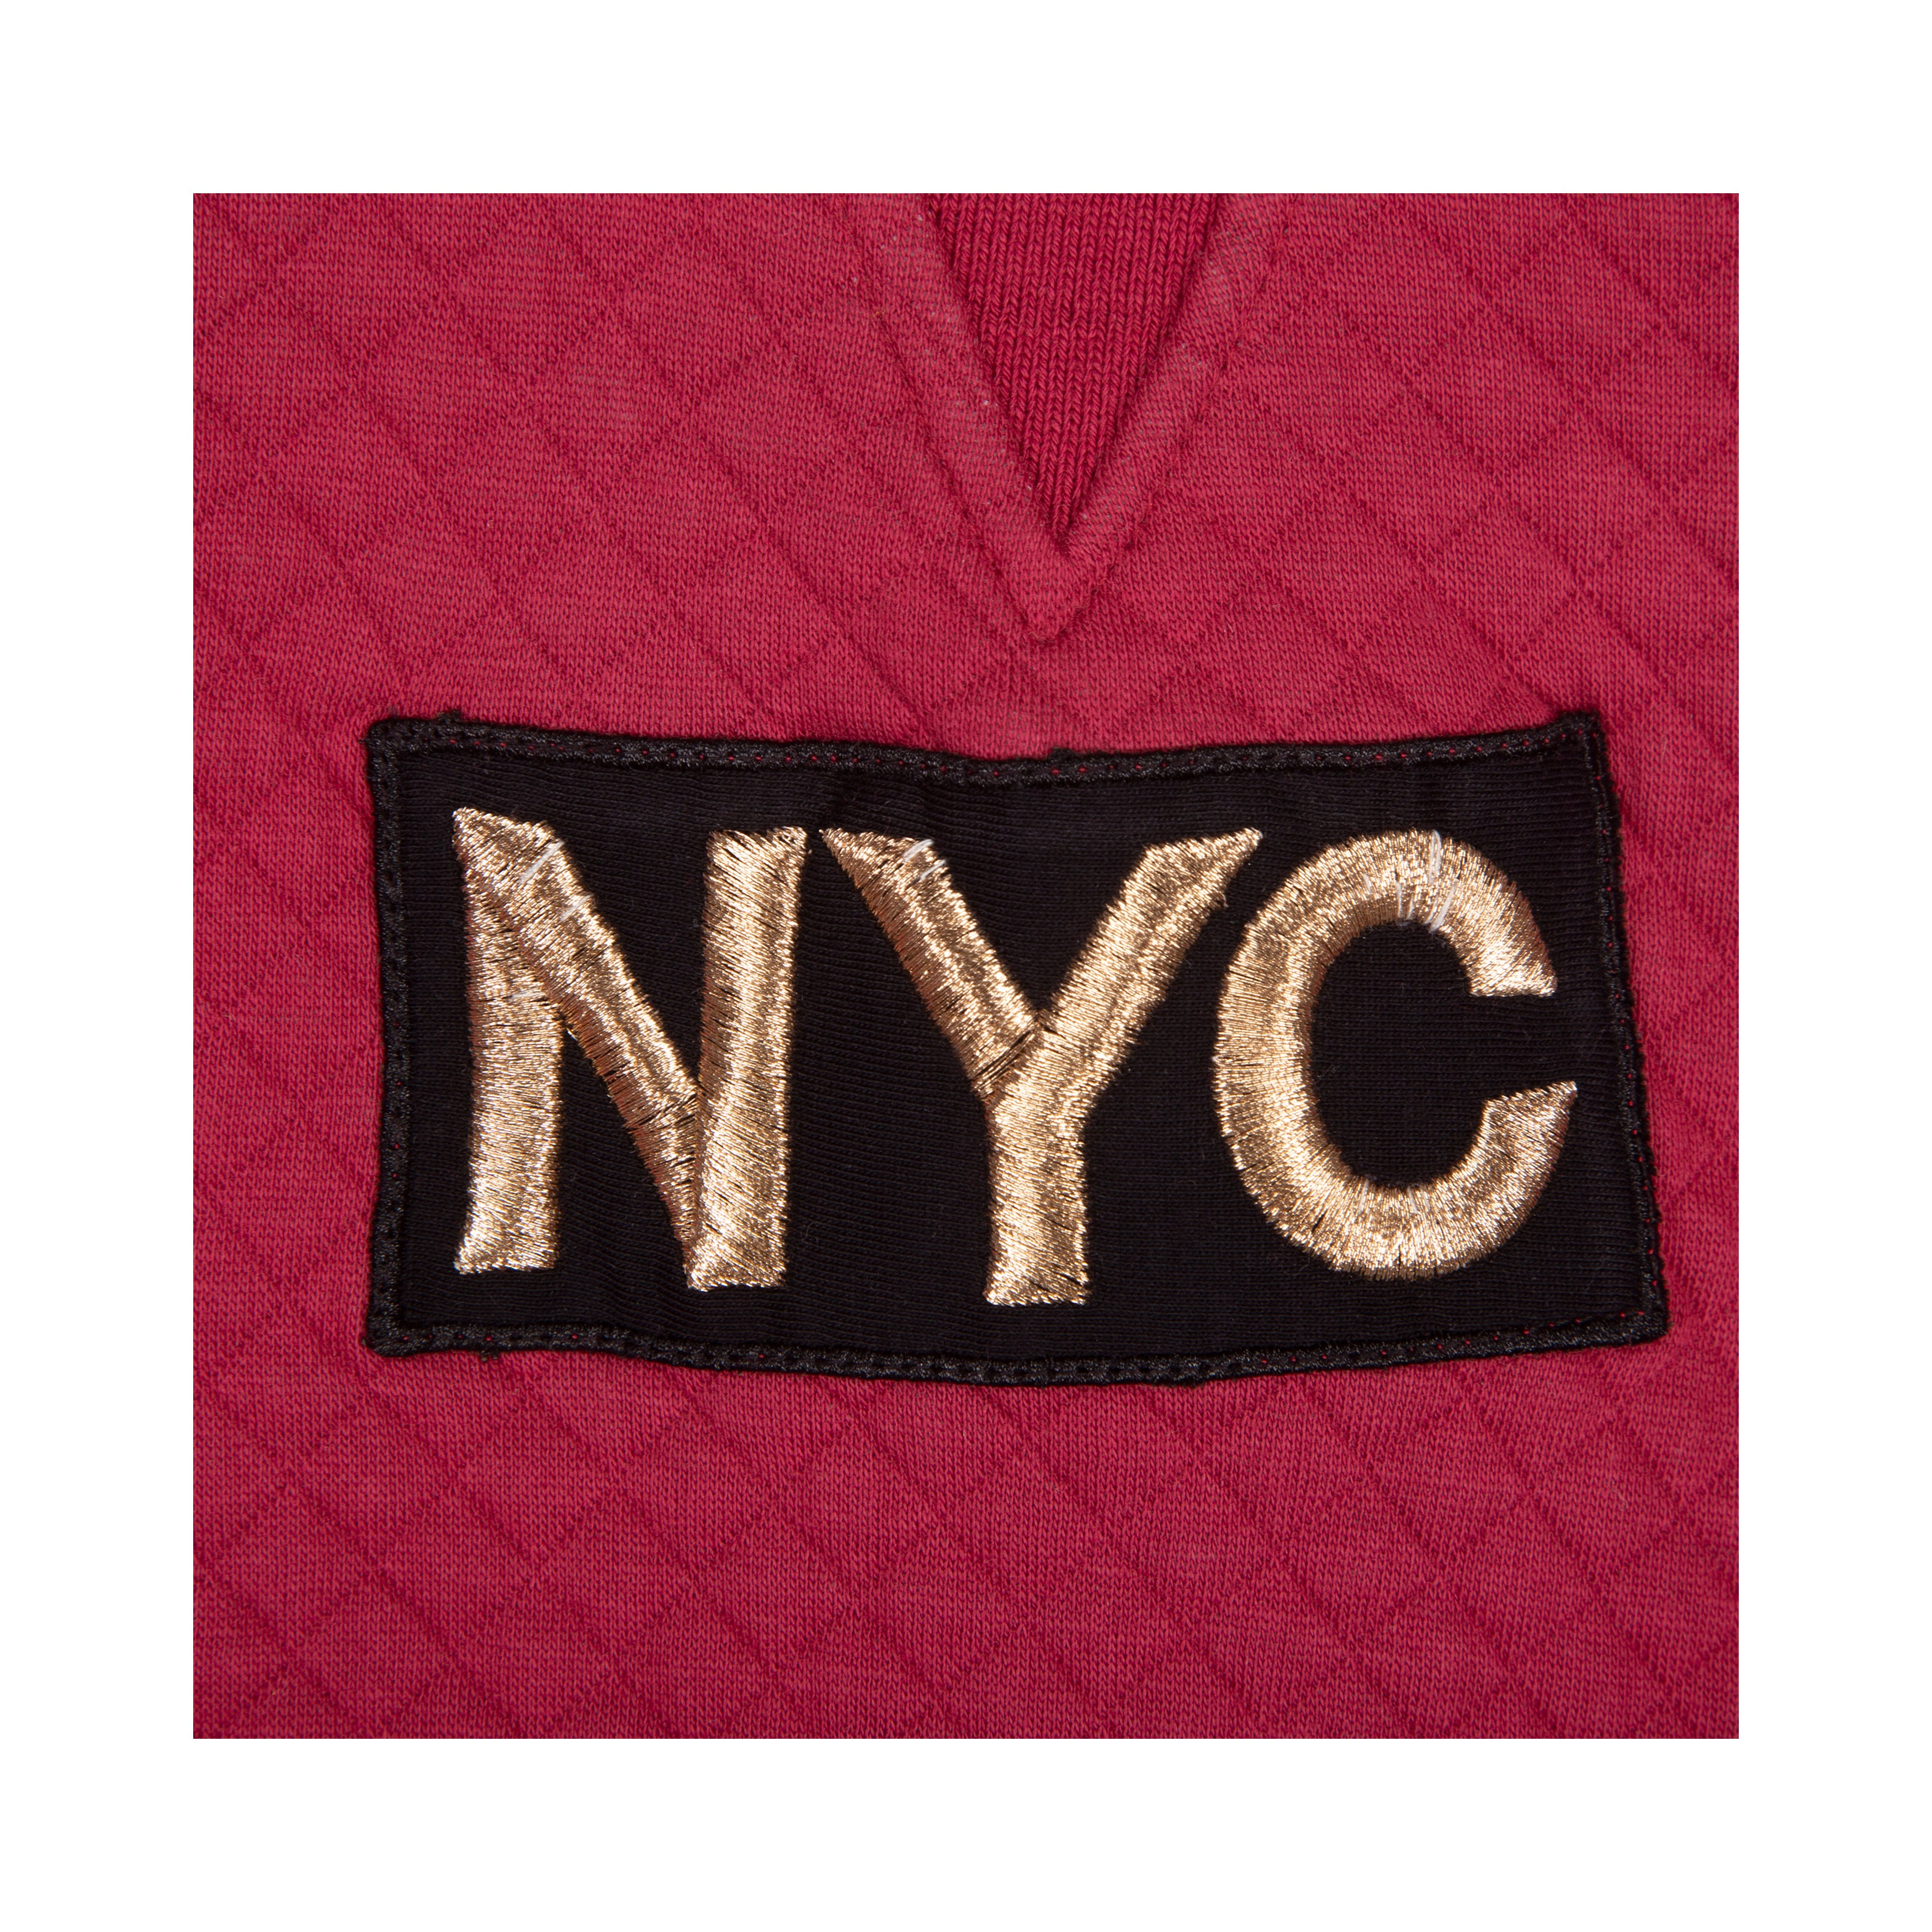 Petit by Sofie Schnoor - Sweatshirt, NYC Quilt - Earth Red